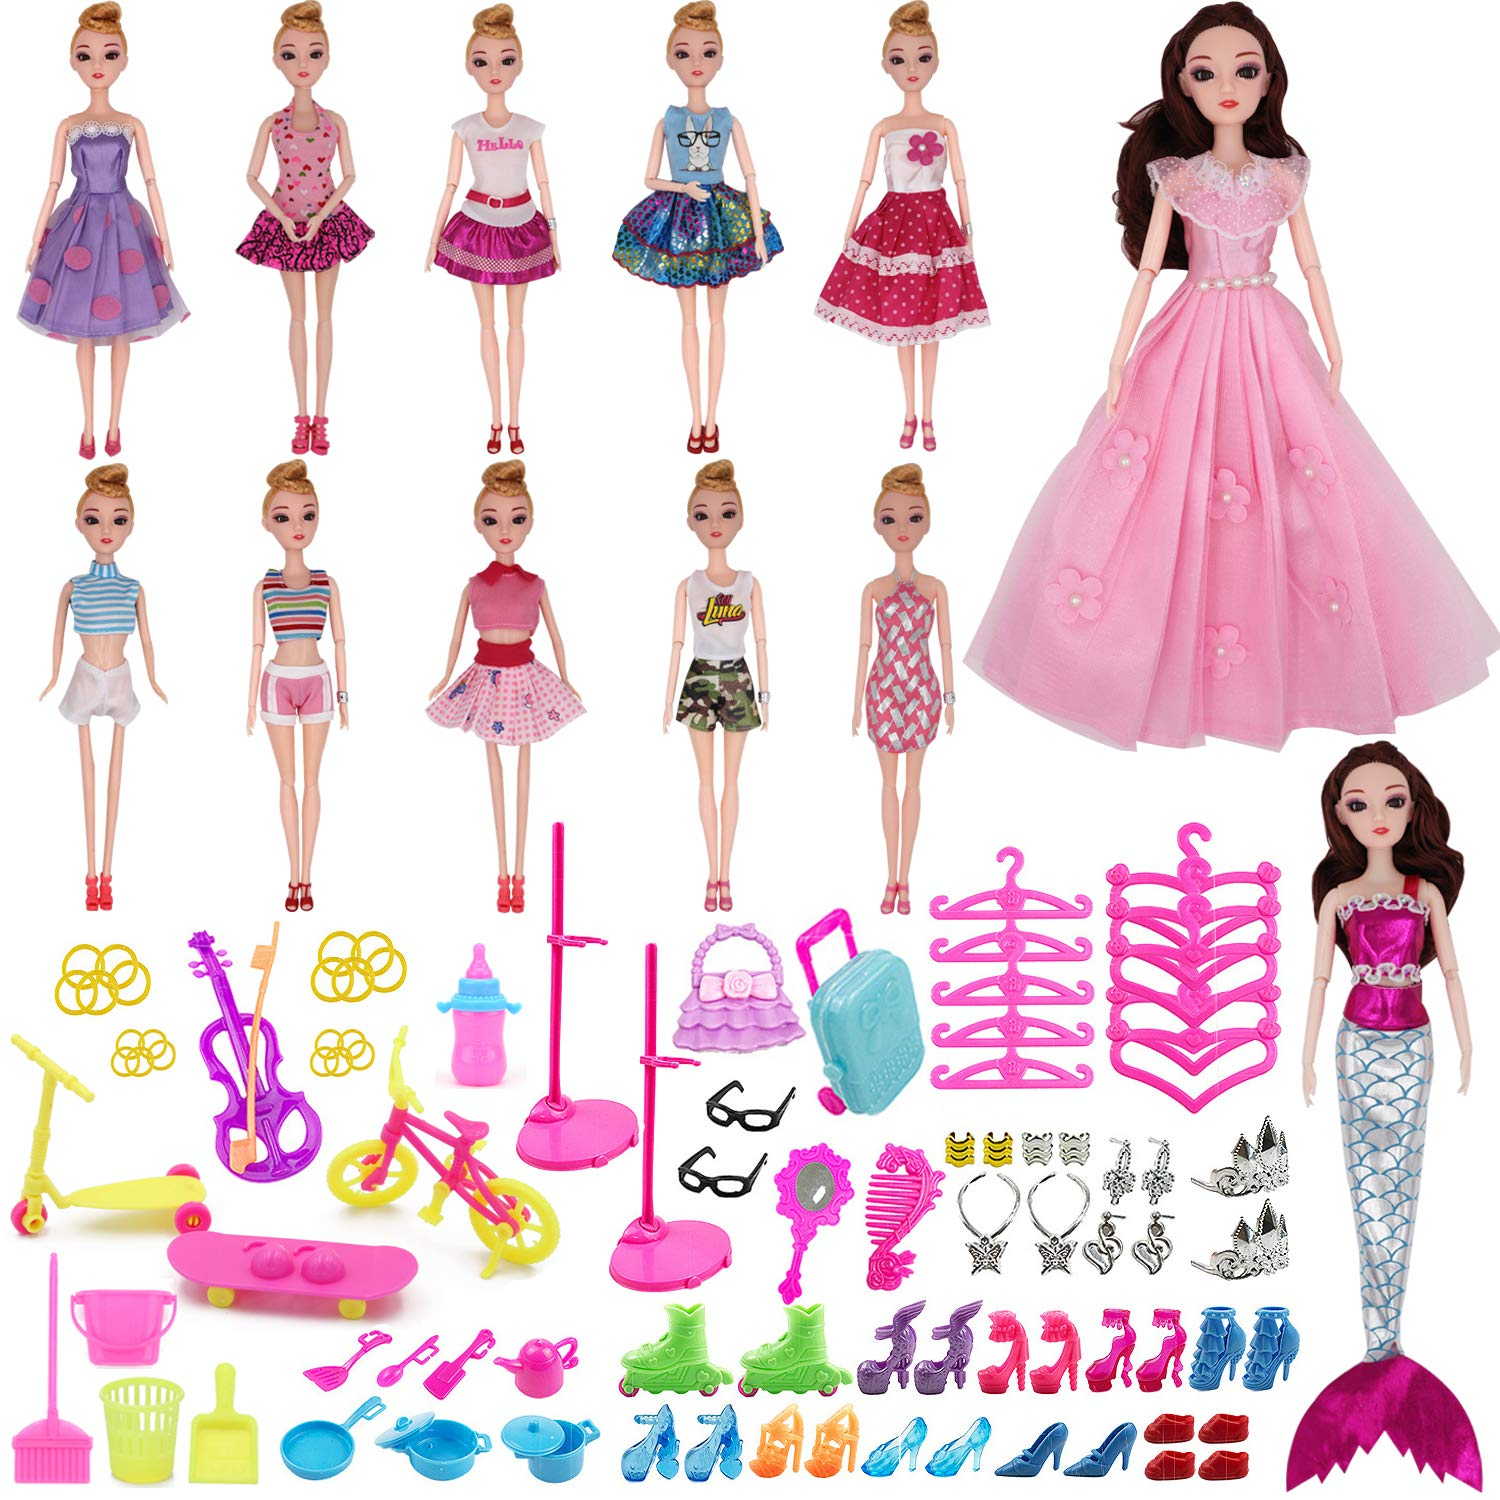 362c5df595472 EuTengHao 89Pcs Doll Clothes and Accessories for Barbie Dolls Set Include  10 Different Party Grown Outfits for Barbie Doll, 77 Doll Accessories,1 ...